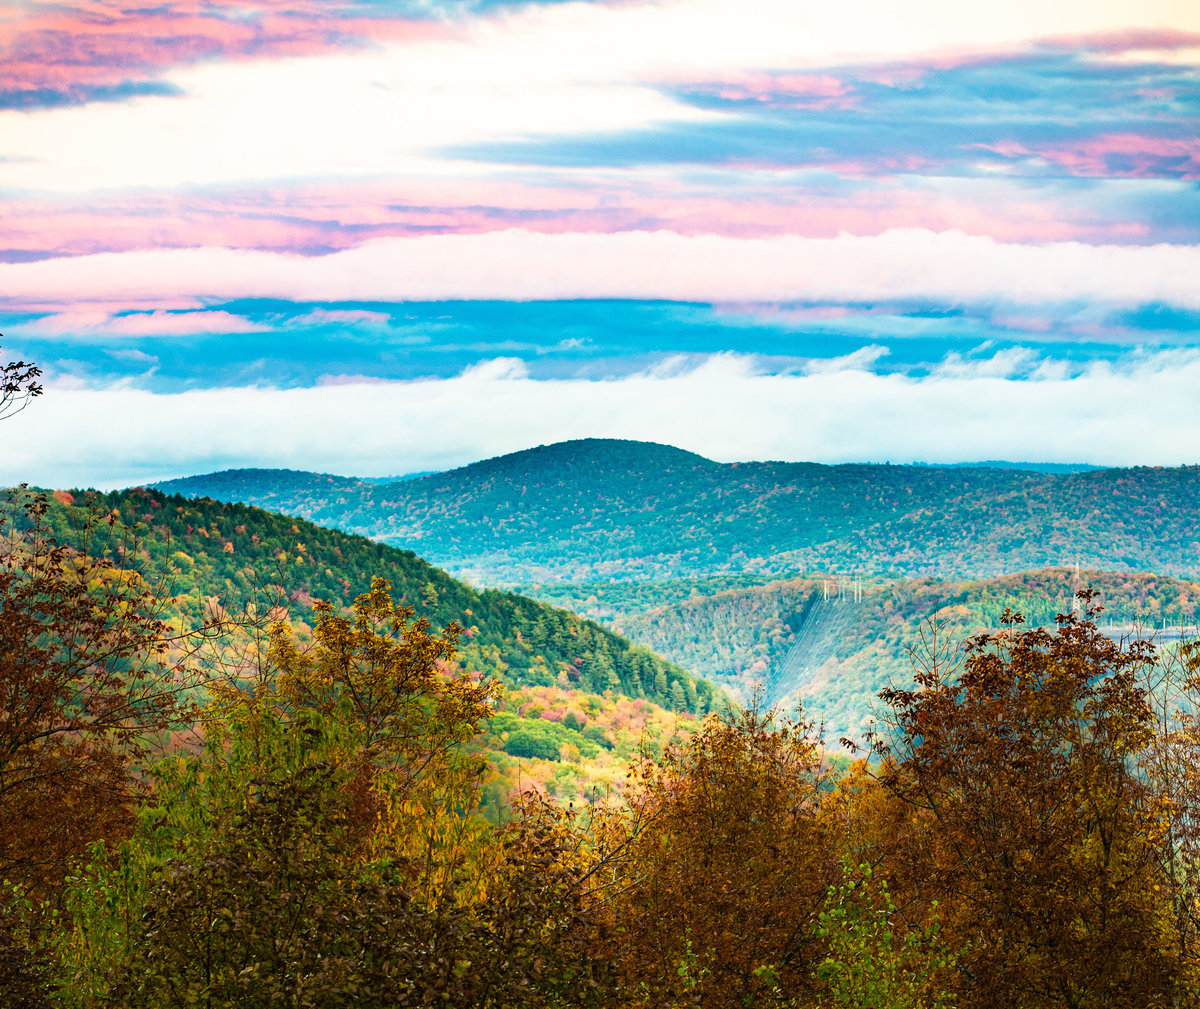 Hall-Potvin Photography Vermont Fall Landscape Photographer-13